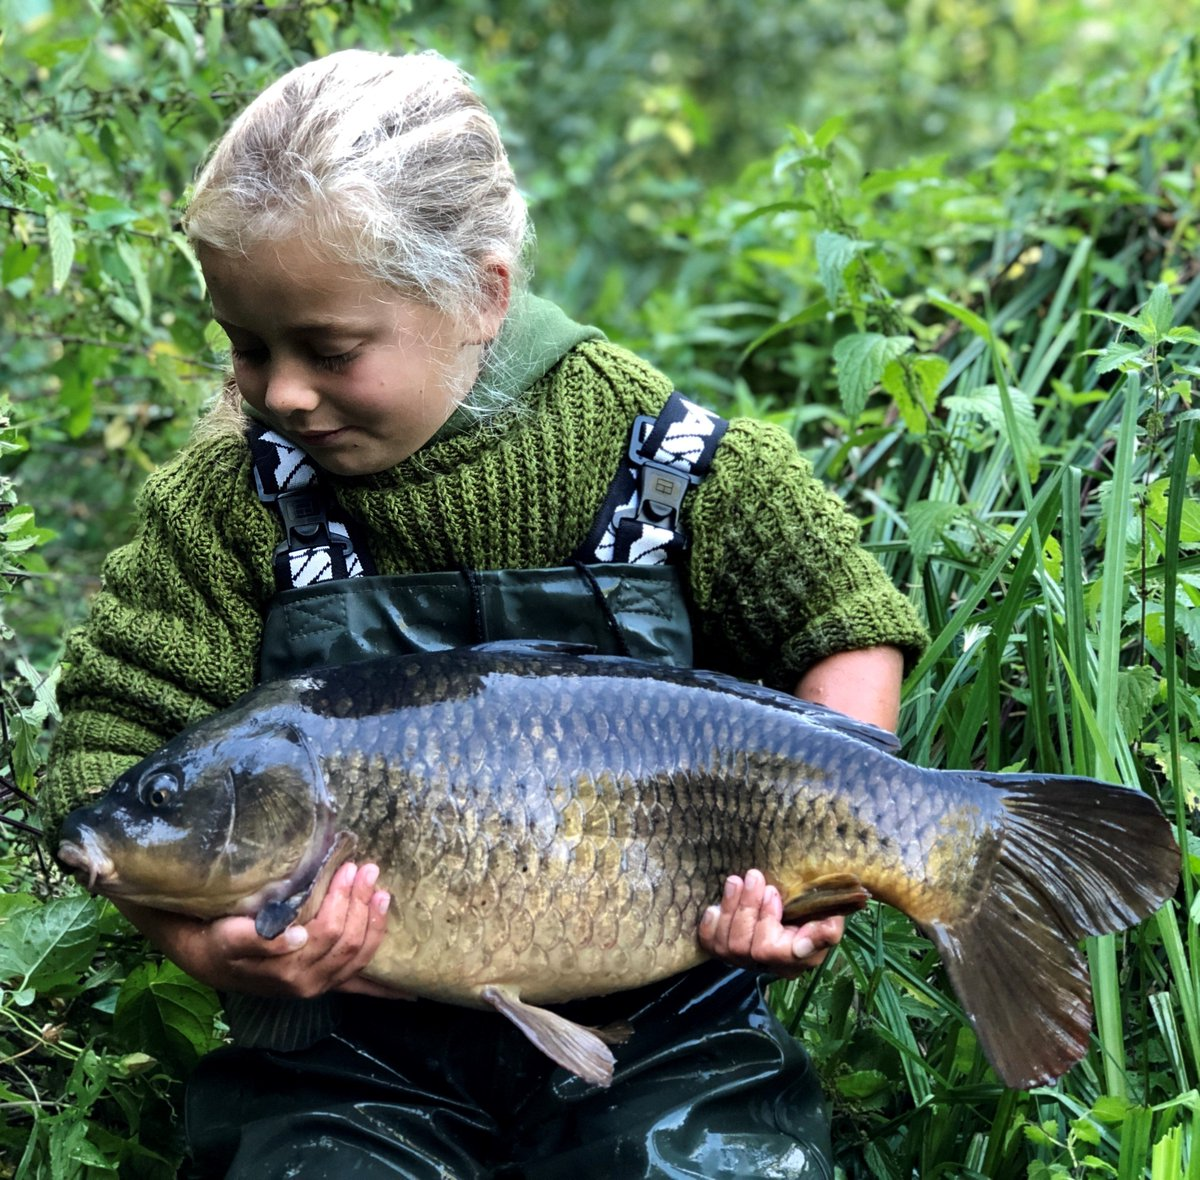 Sophie's river common caught Sunday morning, a <b>Beautiful</b> little carp. Well done Sophie. #carp